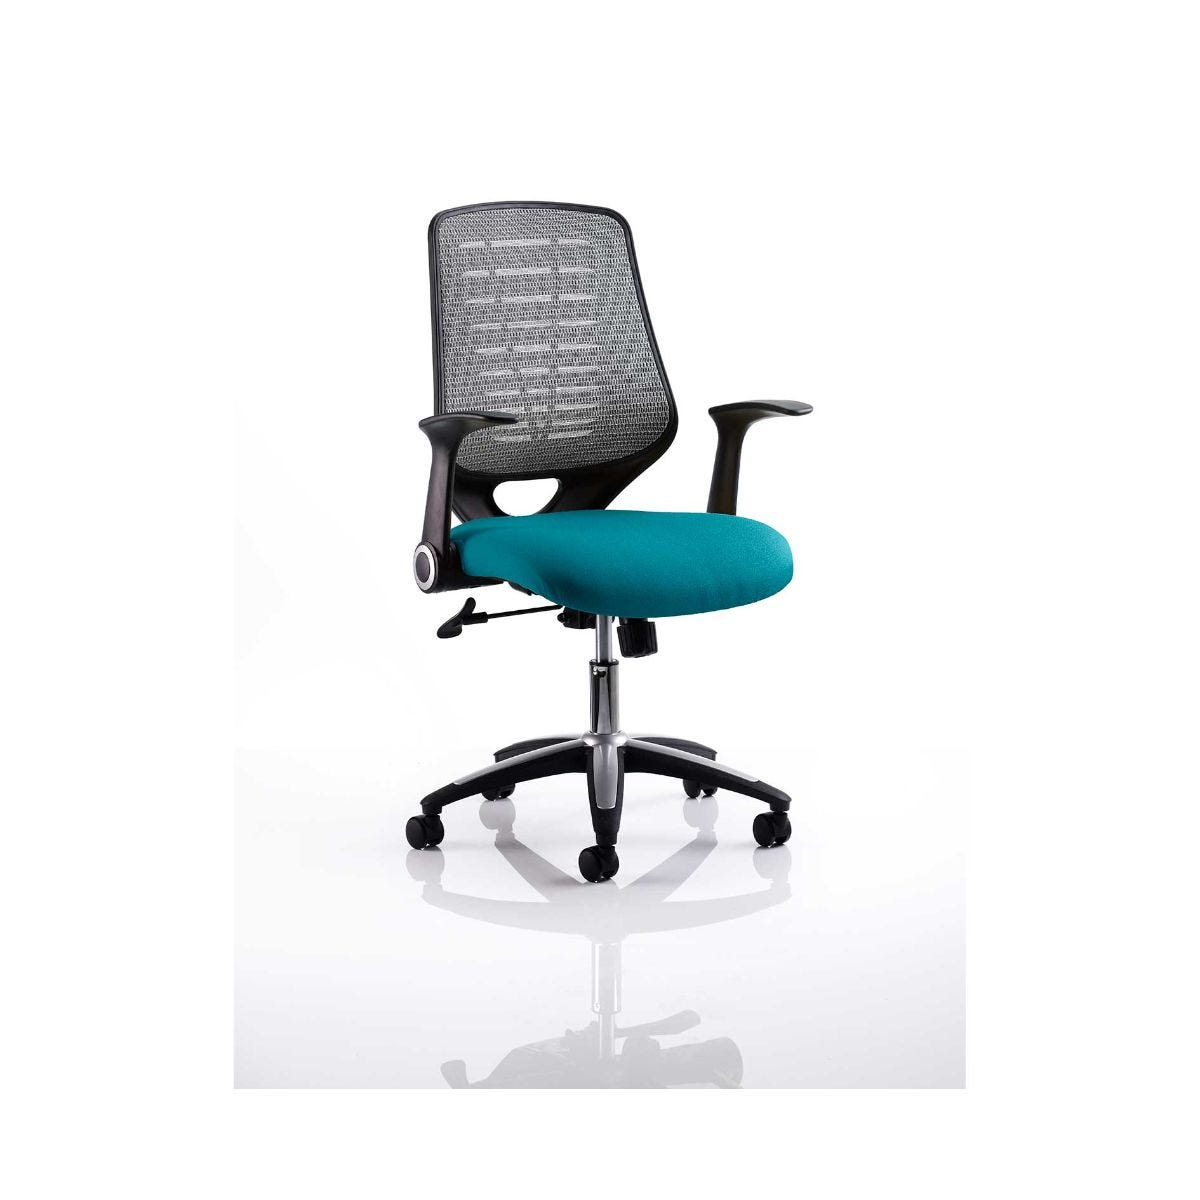 Relay Mesh Back Office Chair Silver, Kingfisher